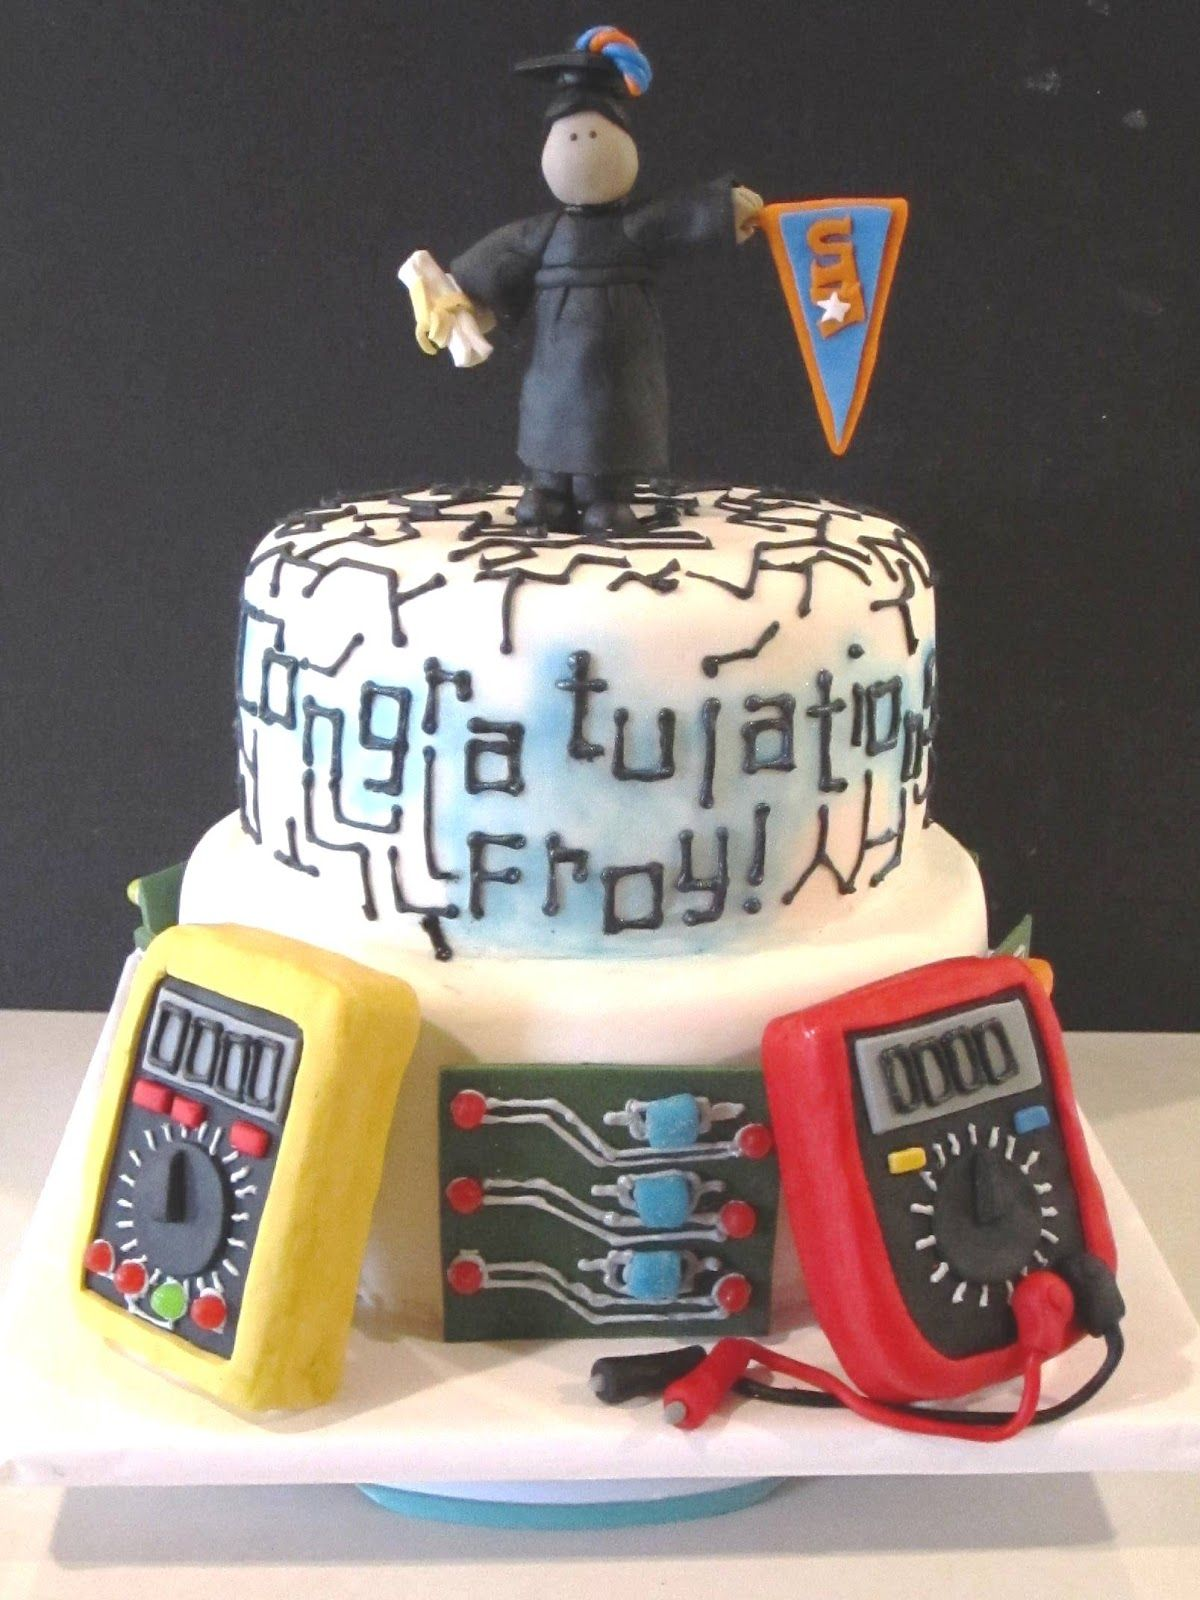 Electrical Engineer Cake Design : electrical engineering birthday party ideas - Google ...